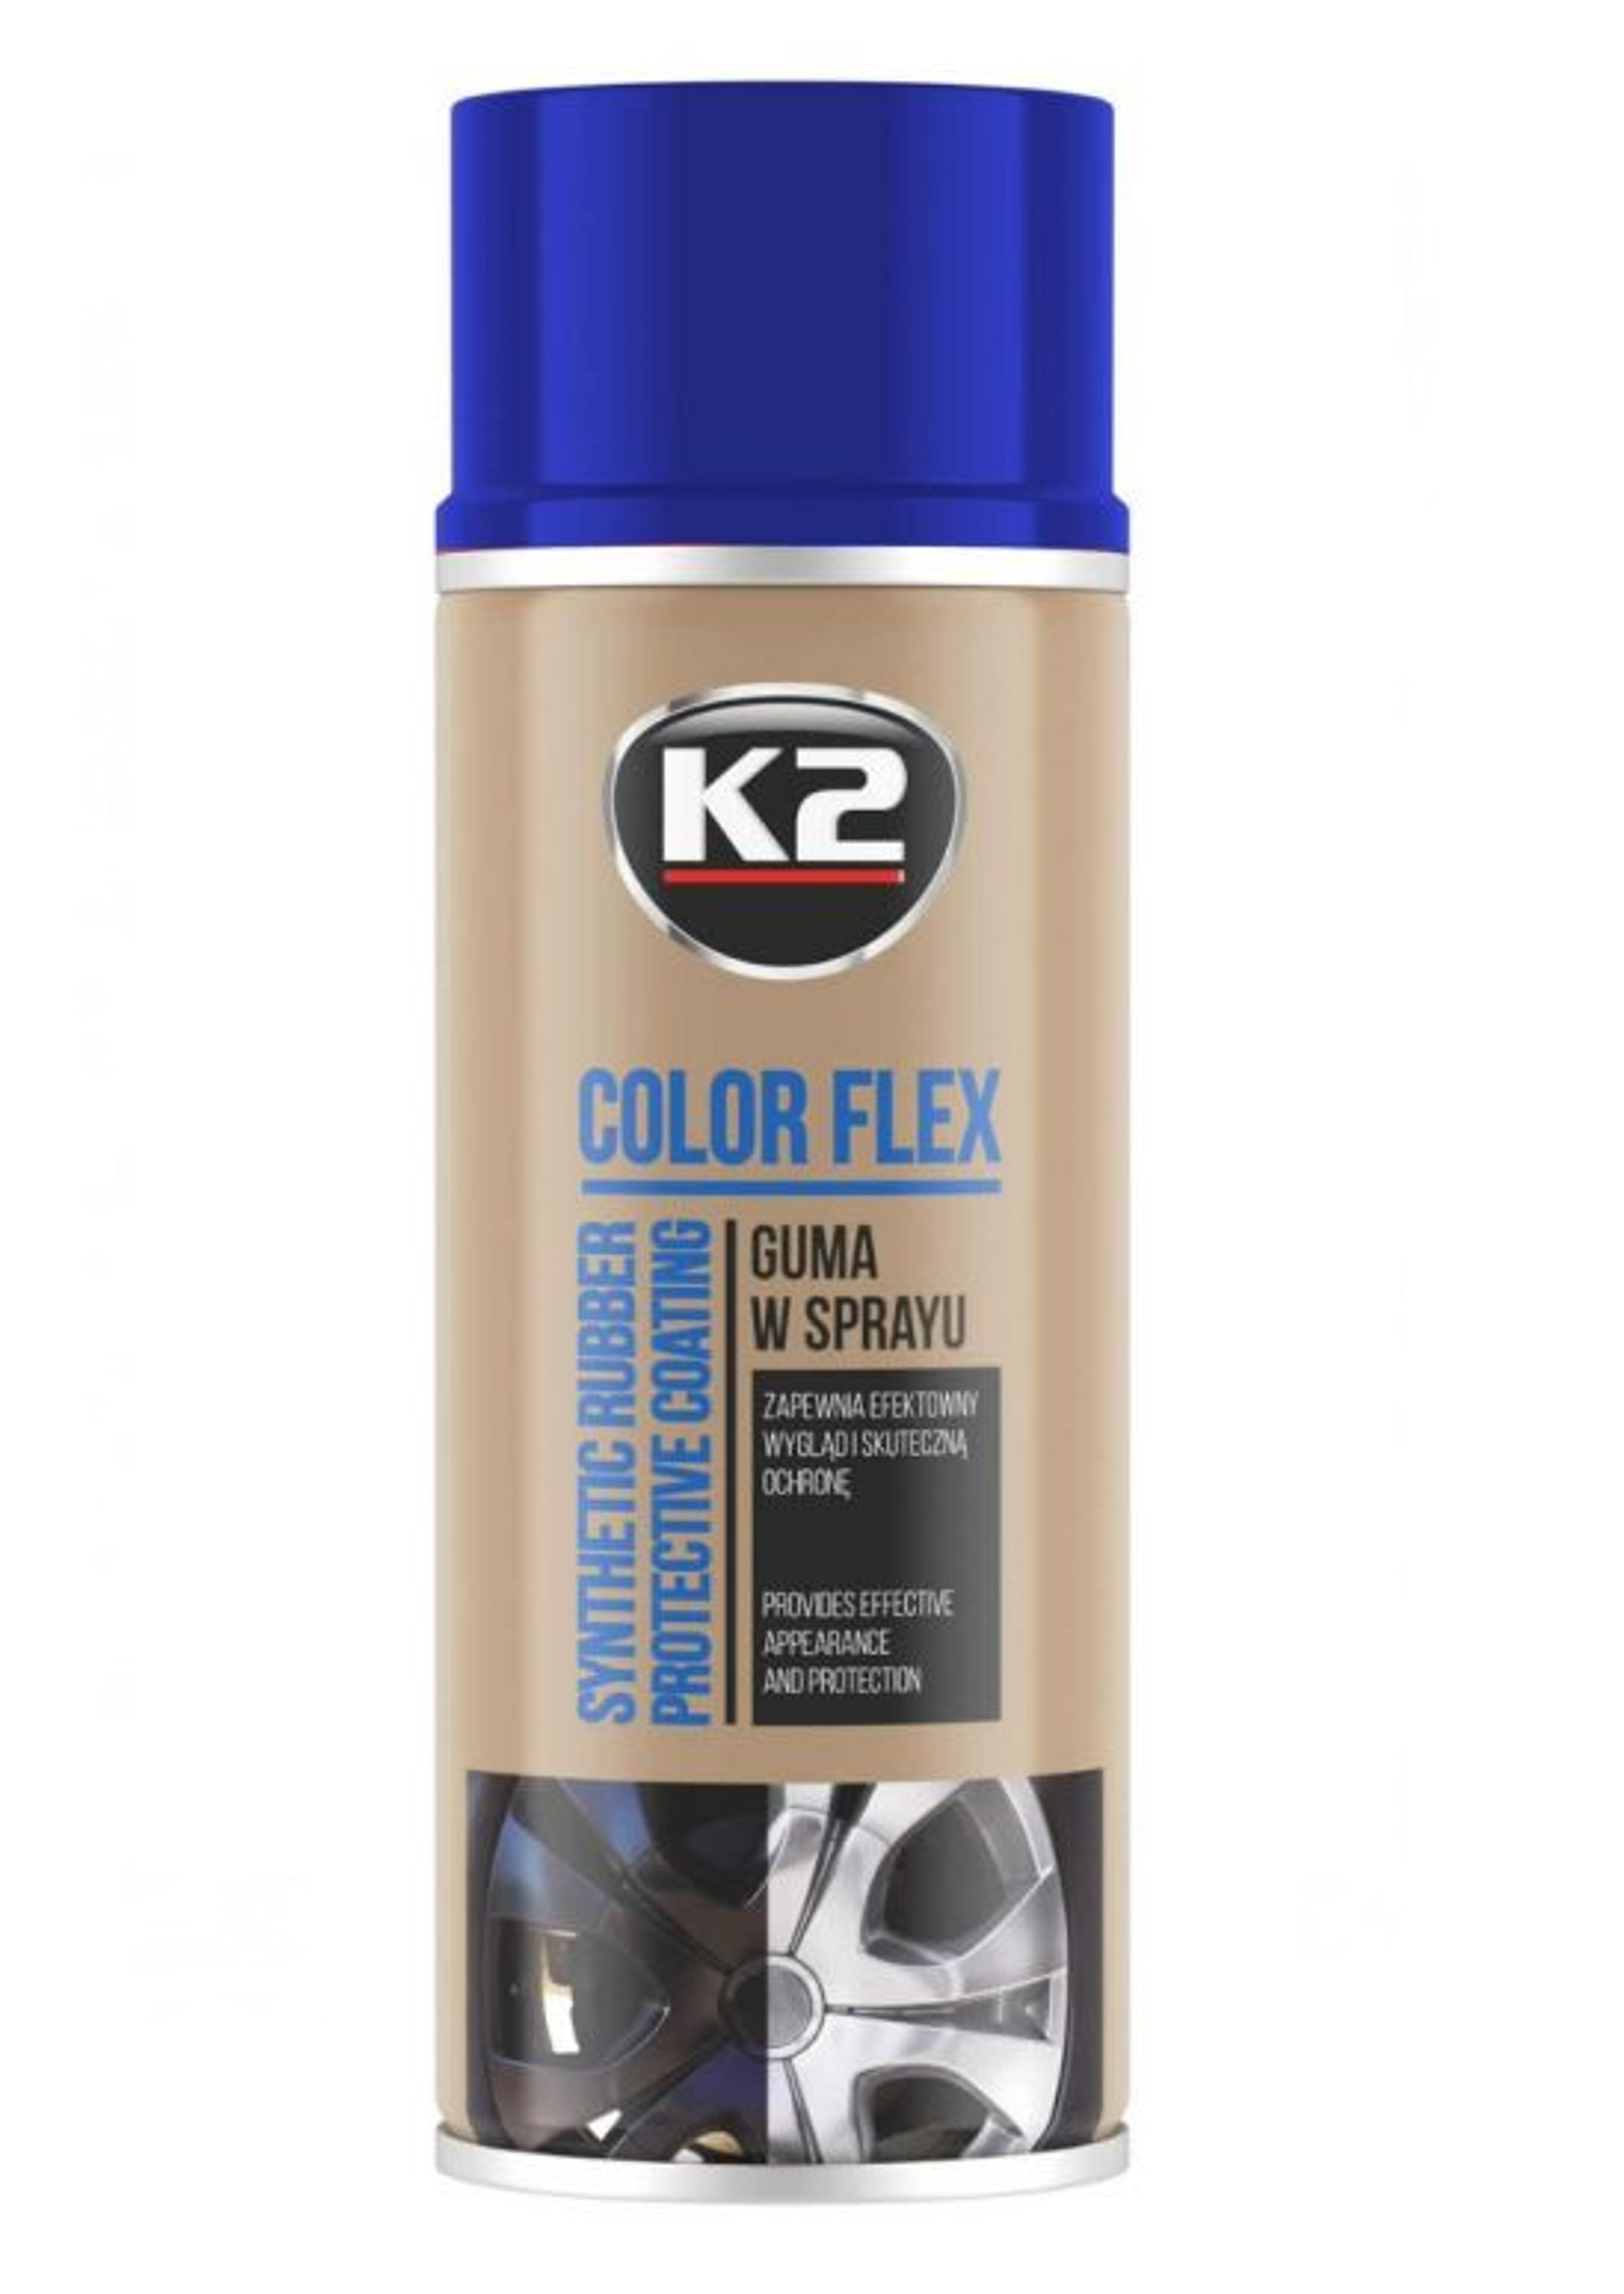 K2 Color Flex Niebieski 400ml Guma w Sprayu